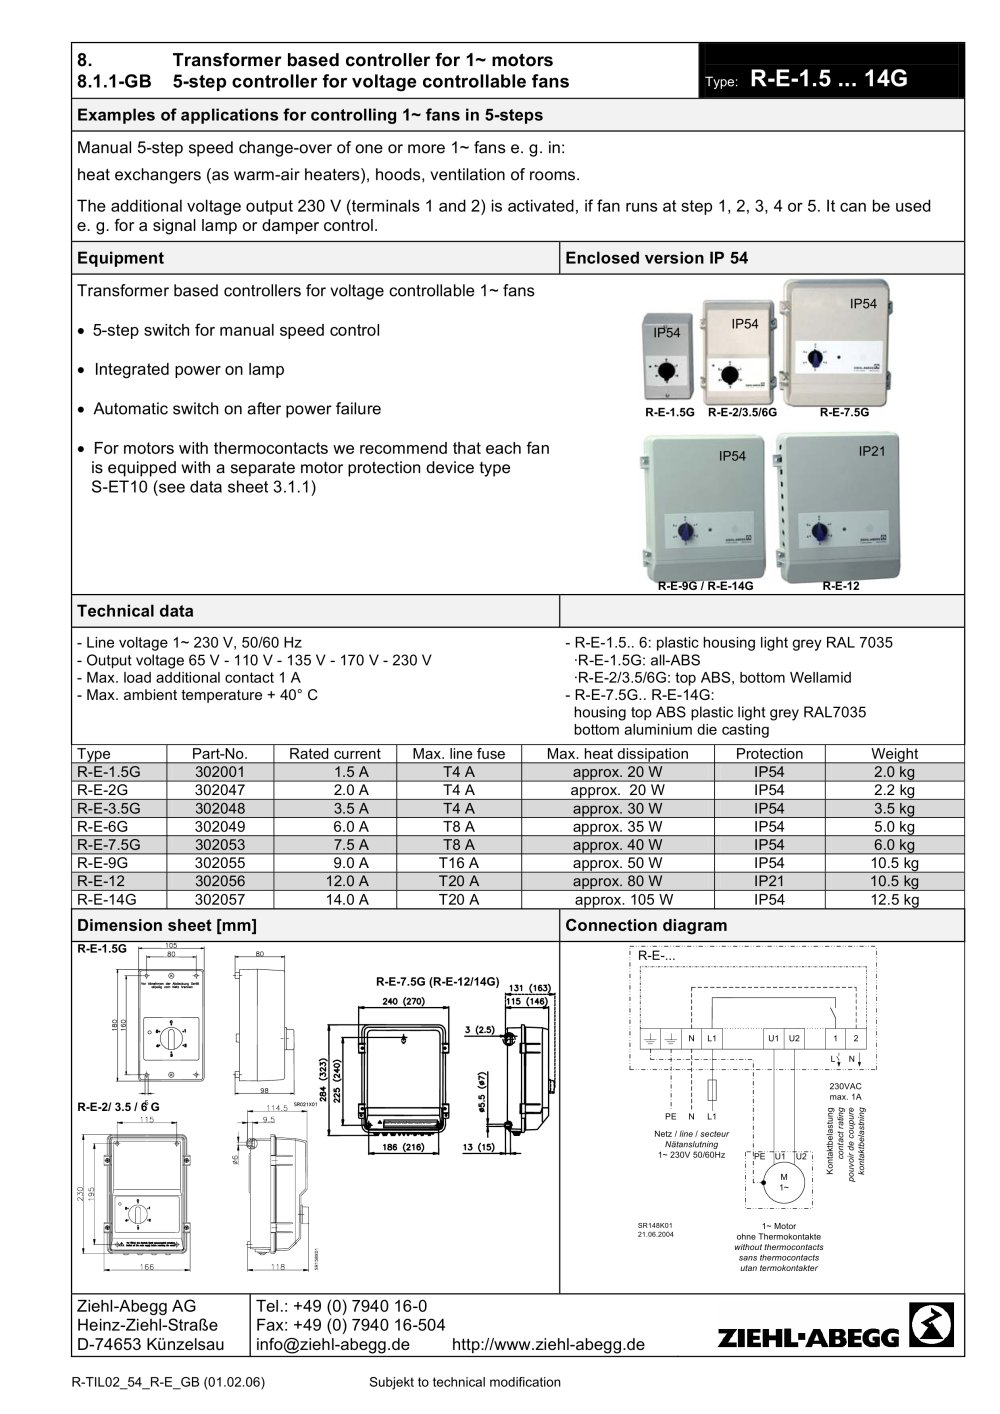 r e1514g 171775_1b r e1 5 14g ziehl abegg pdf catalogue technical ziehl abegg wiring diagram at gsmx.co